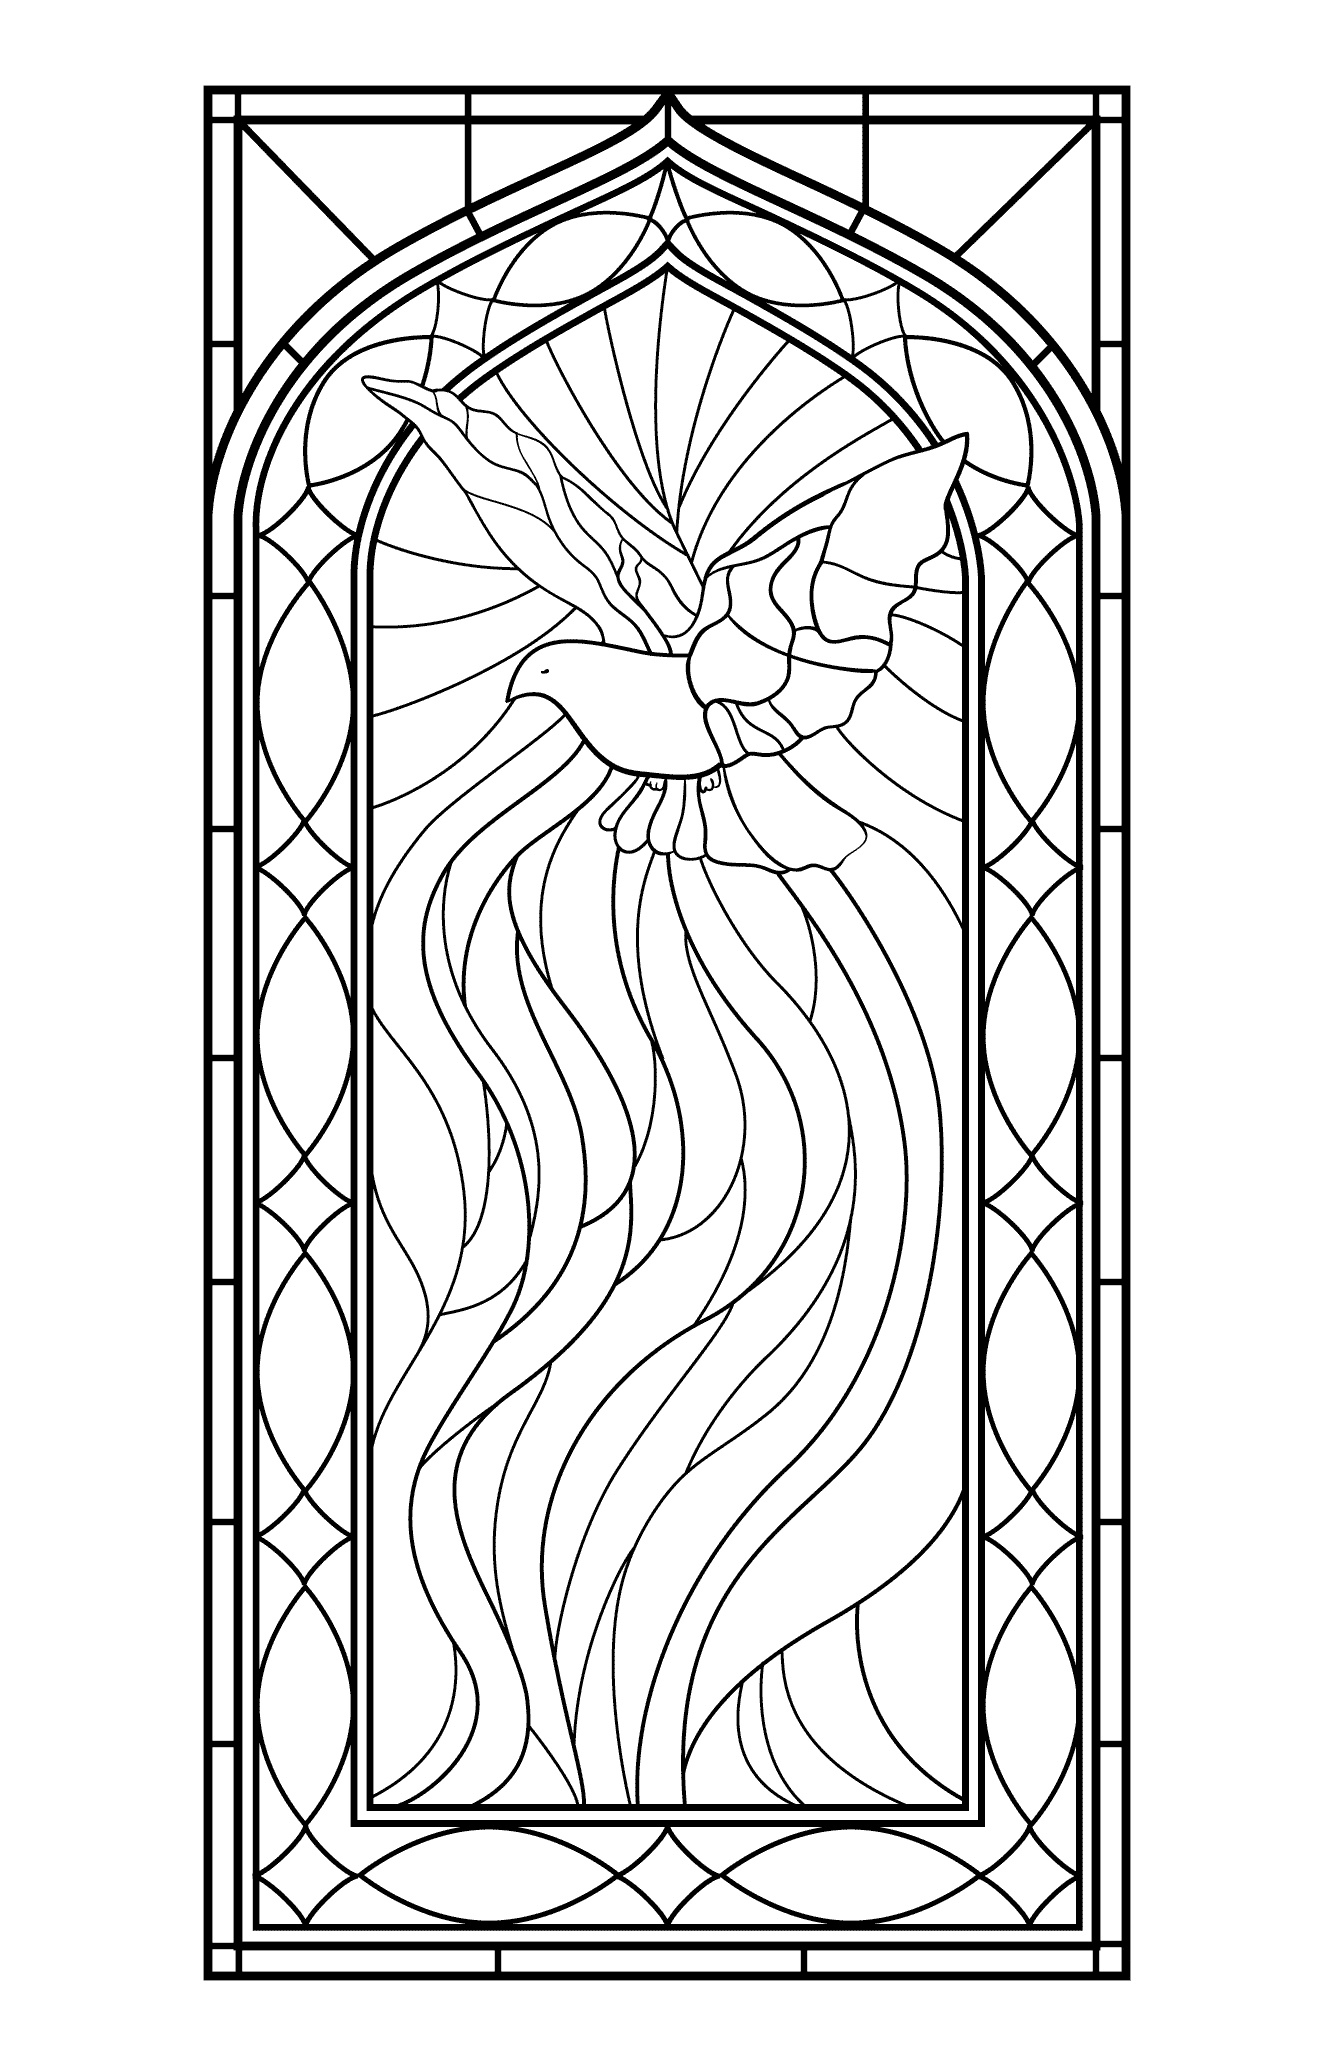 stained glass coloring page stained glass cross coloring page at getcoloringscom stained glass coloring page